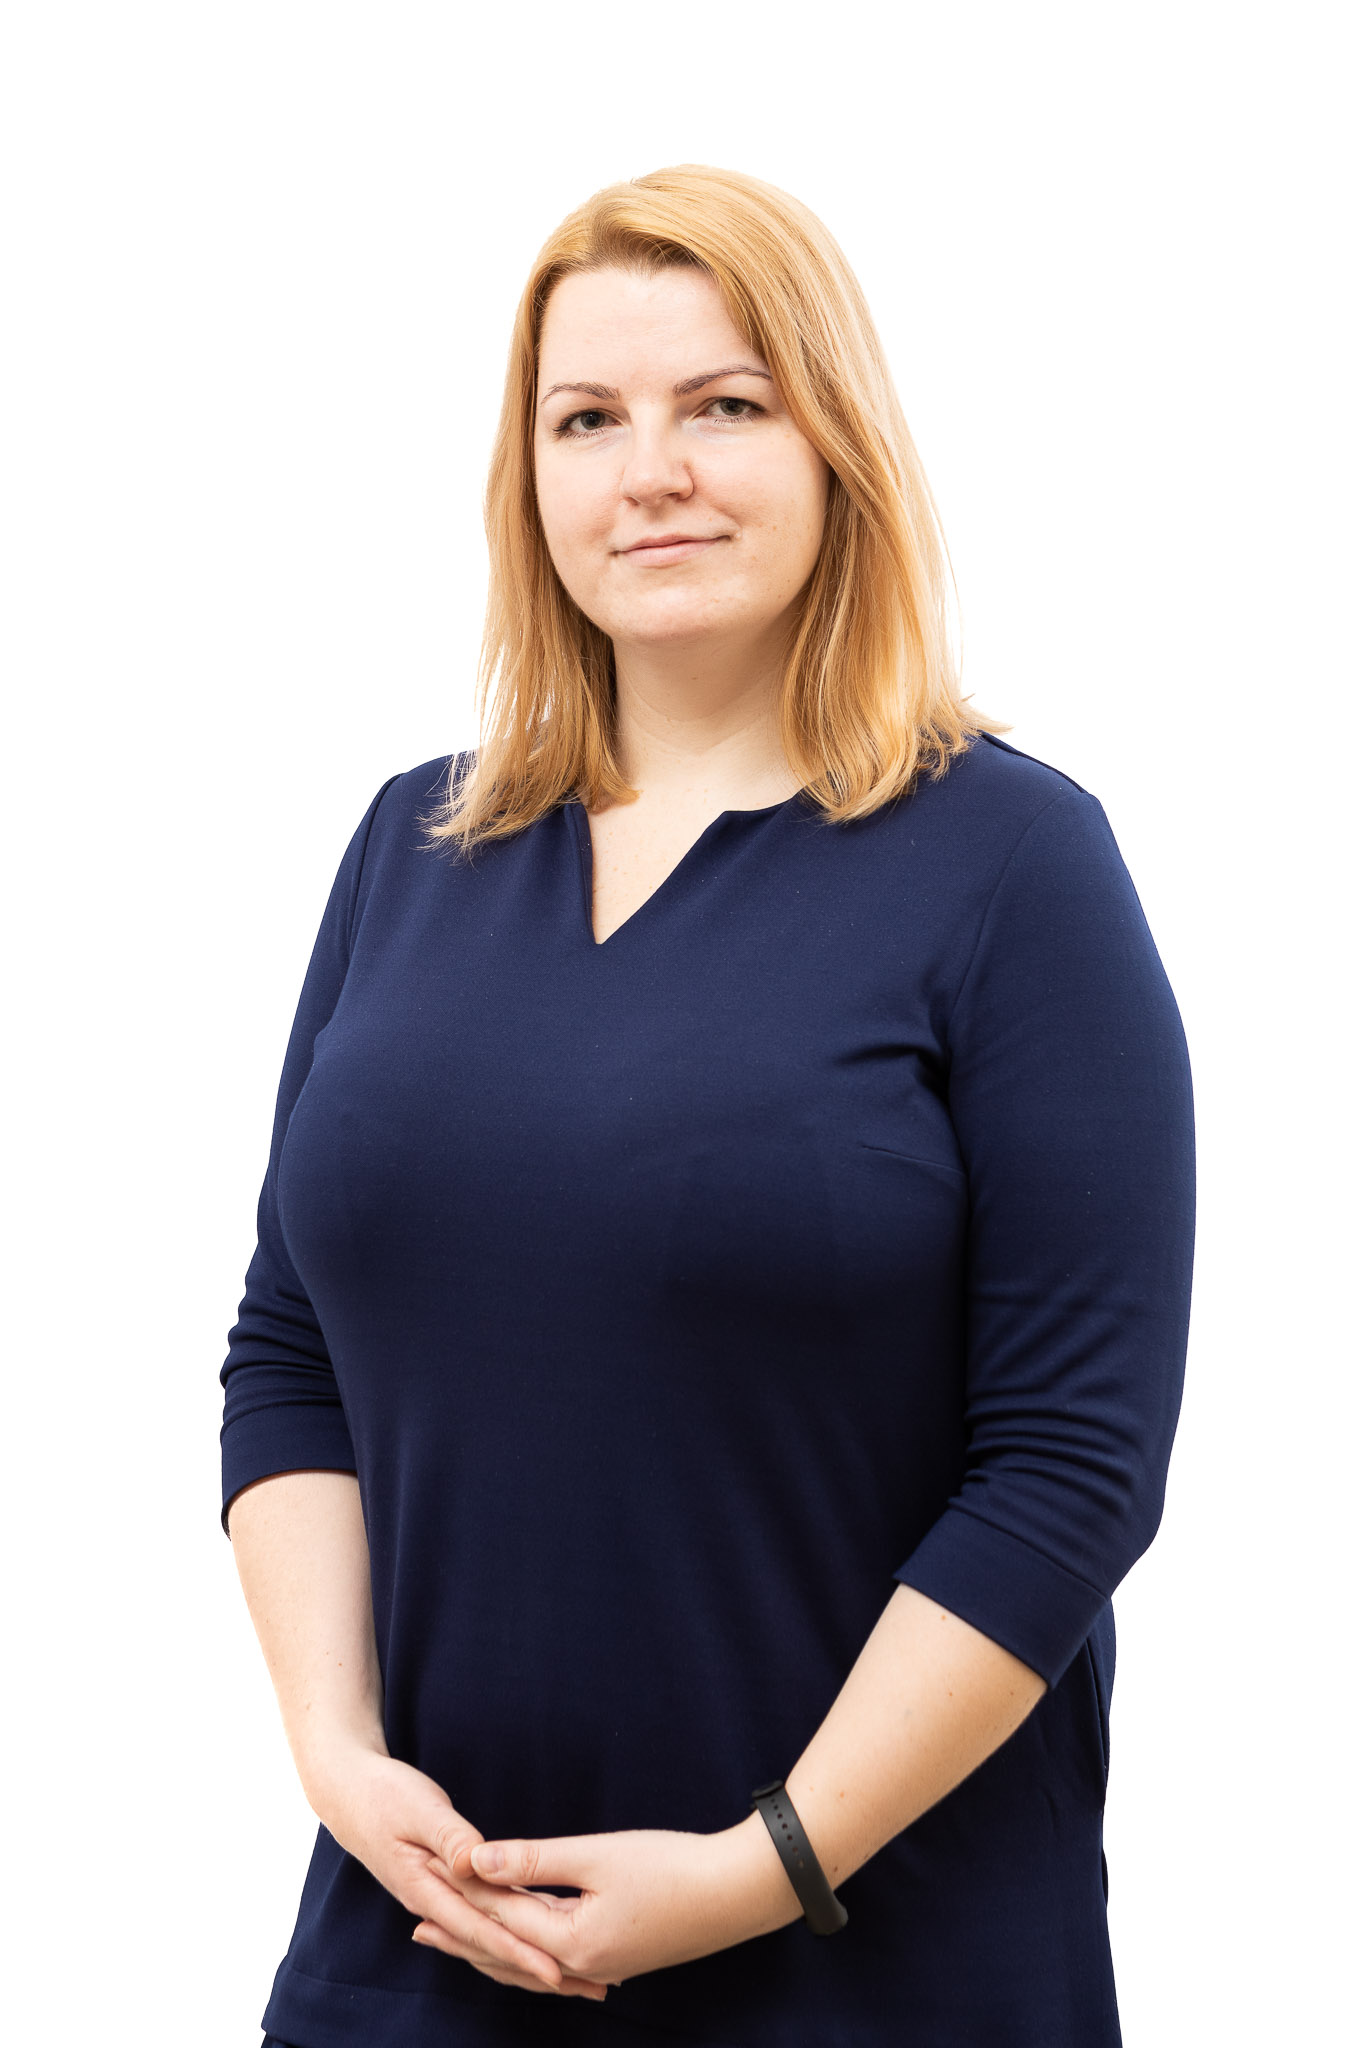 Evelina Dausėnaitė Leinonen Head of Tax & Legal